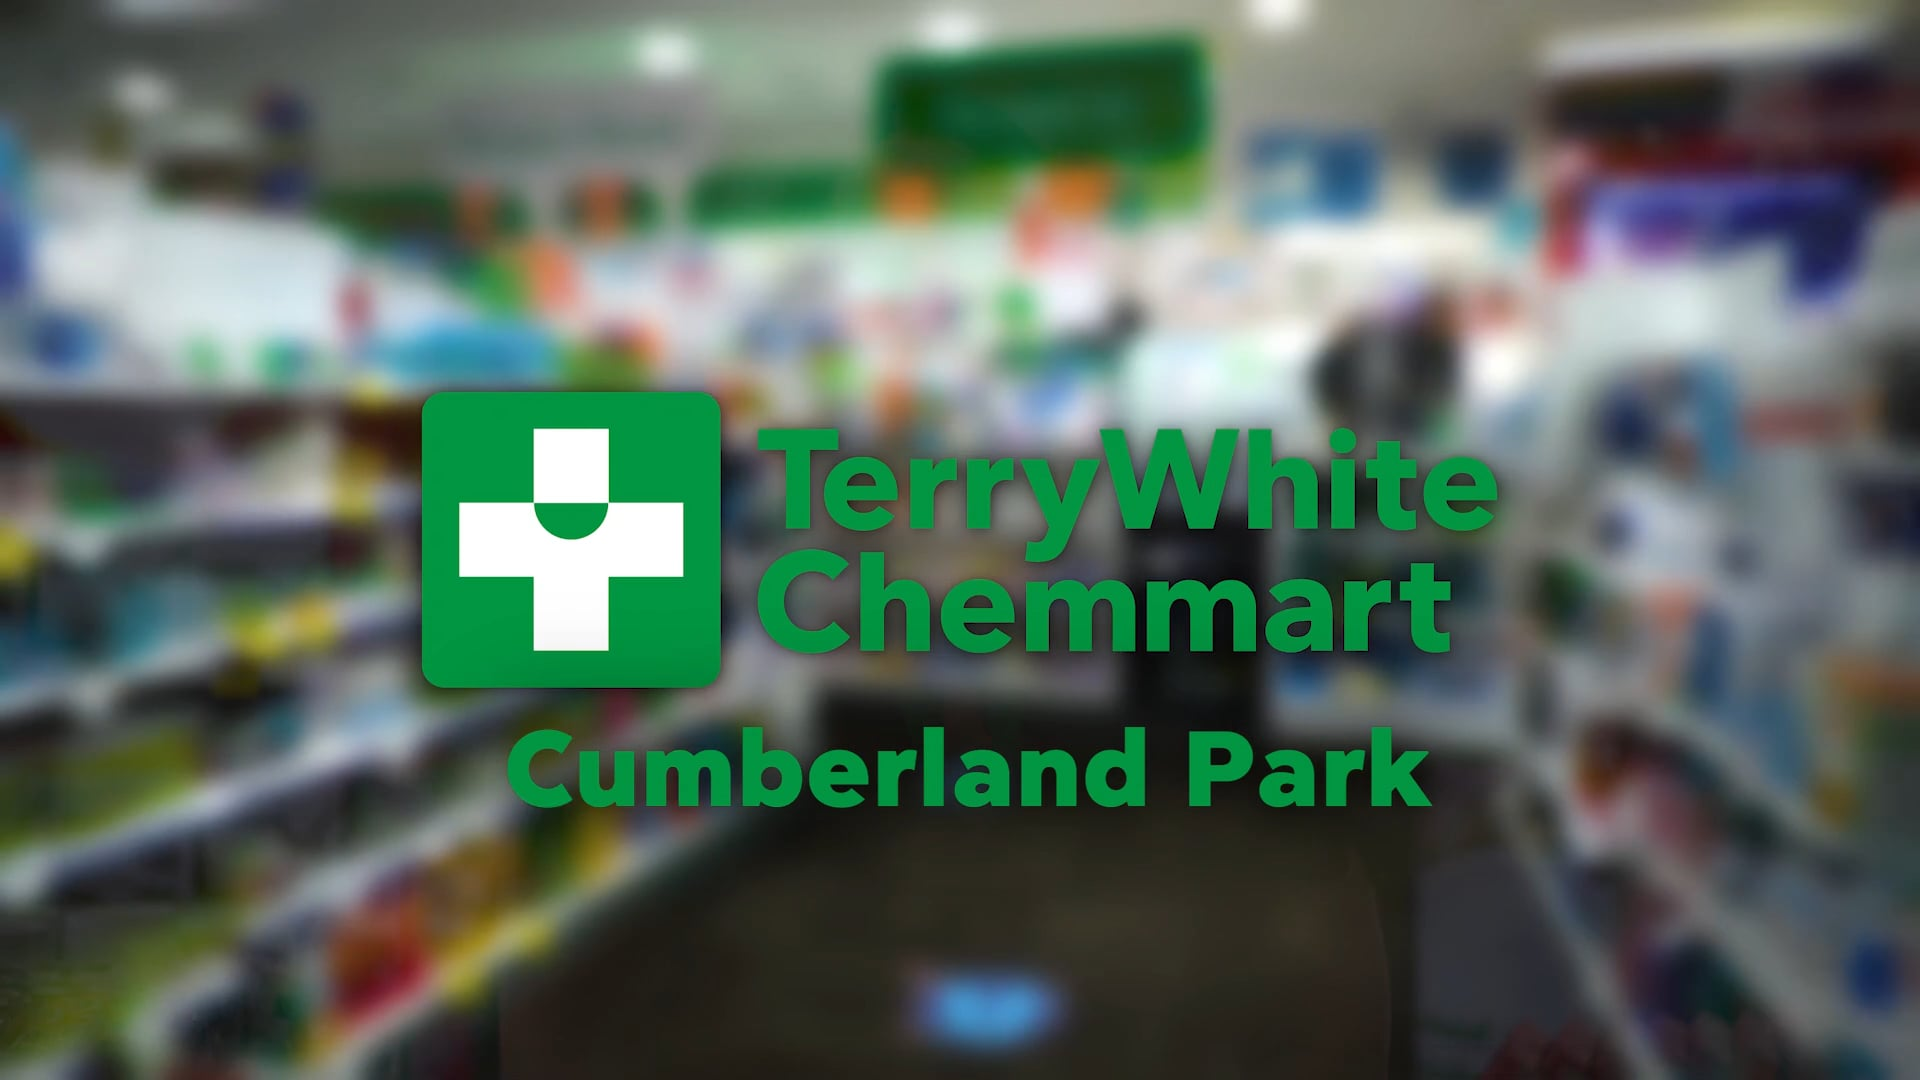 TerryWhite Chemmart Vaccination Promo